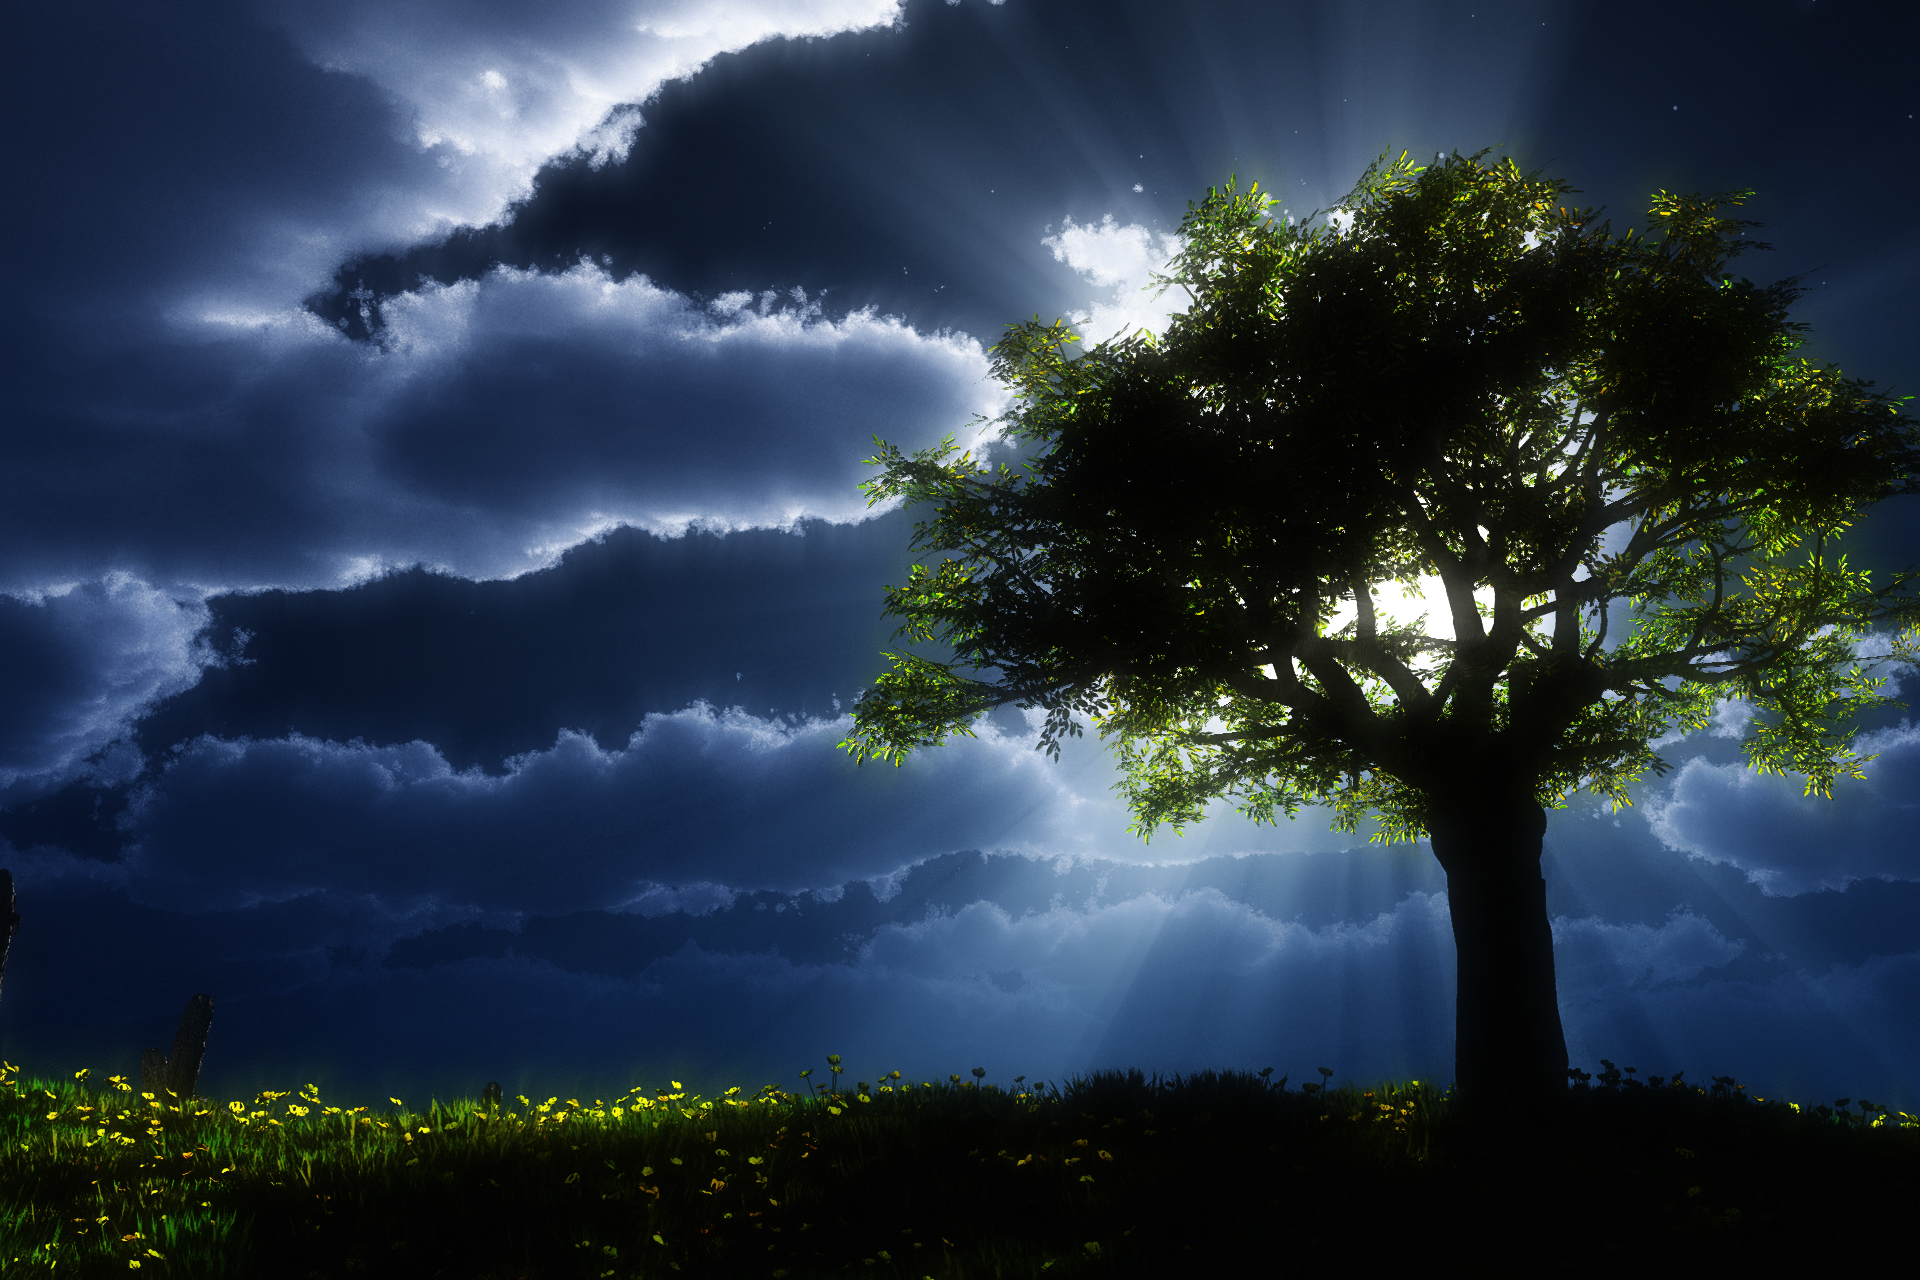 Dark Trees Hd Wallpapers: Nature HD Wallpaper